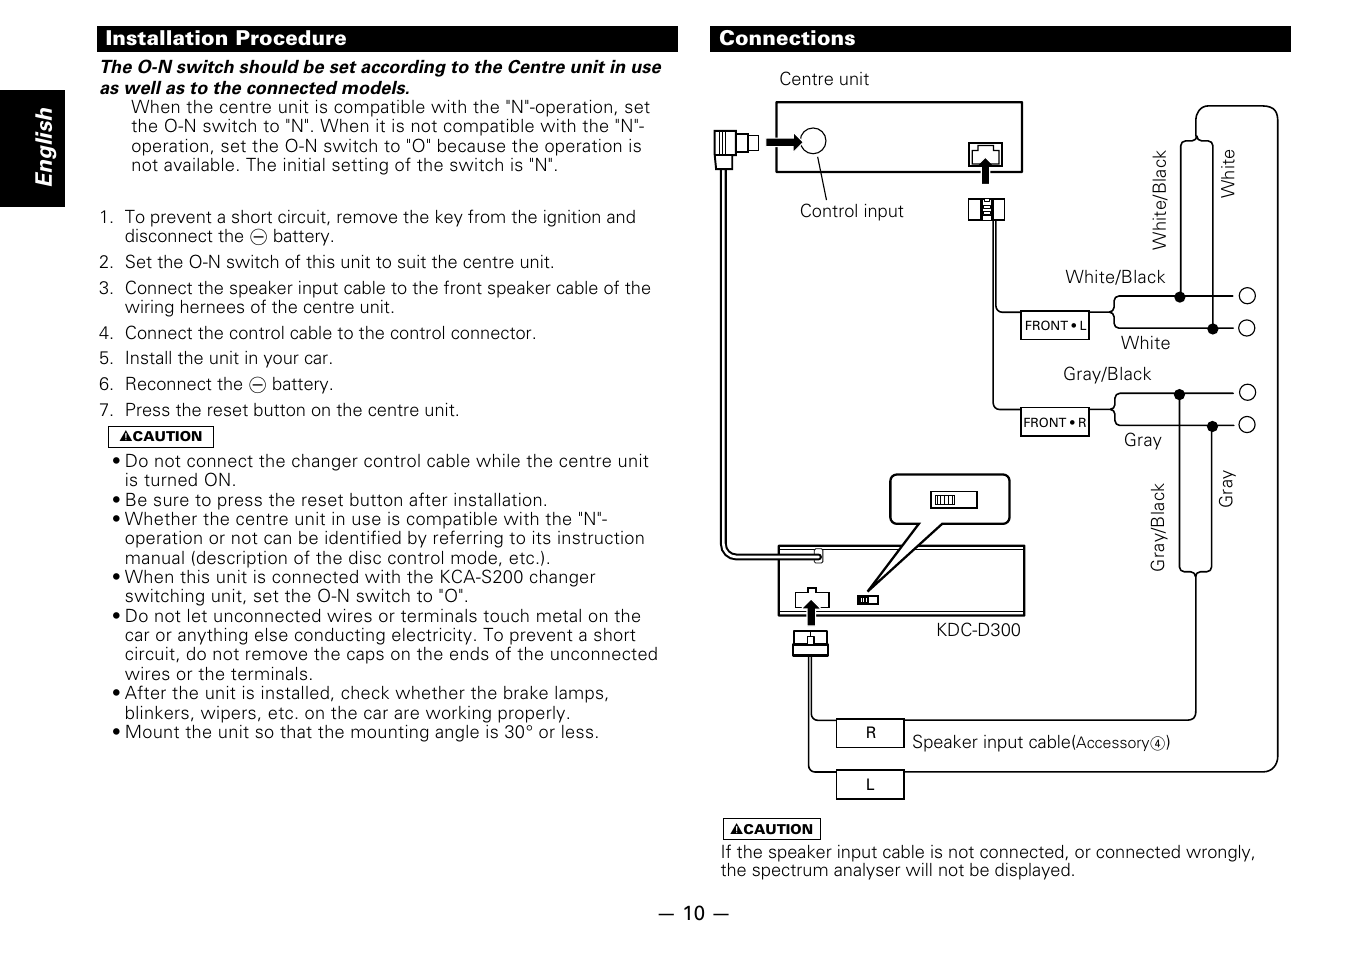 Wiring Diagram Kdc D300 Cd Player Guide And Troubleshooting Of Installation Procedure Connections English Kenwood User Rh Manualsdir Com